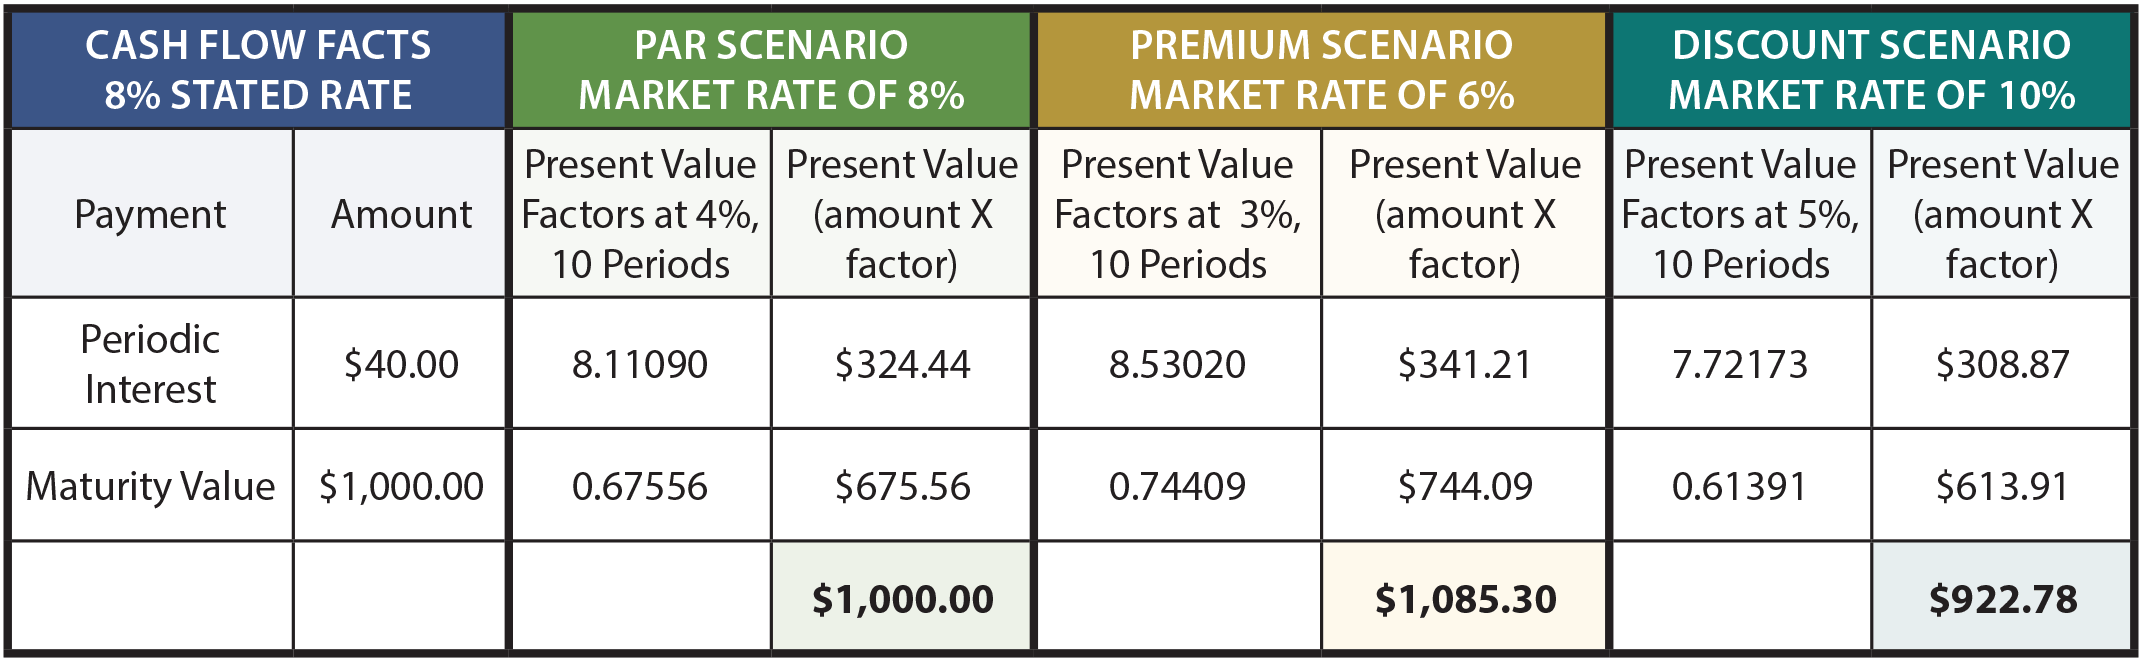 Price Calculation for Scenarios